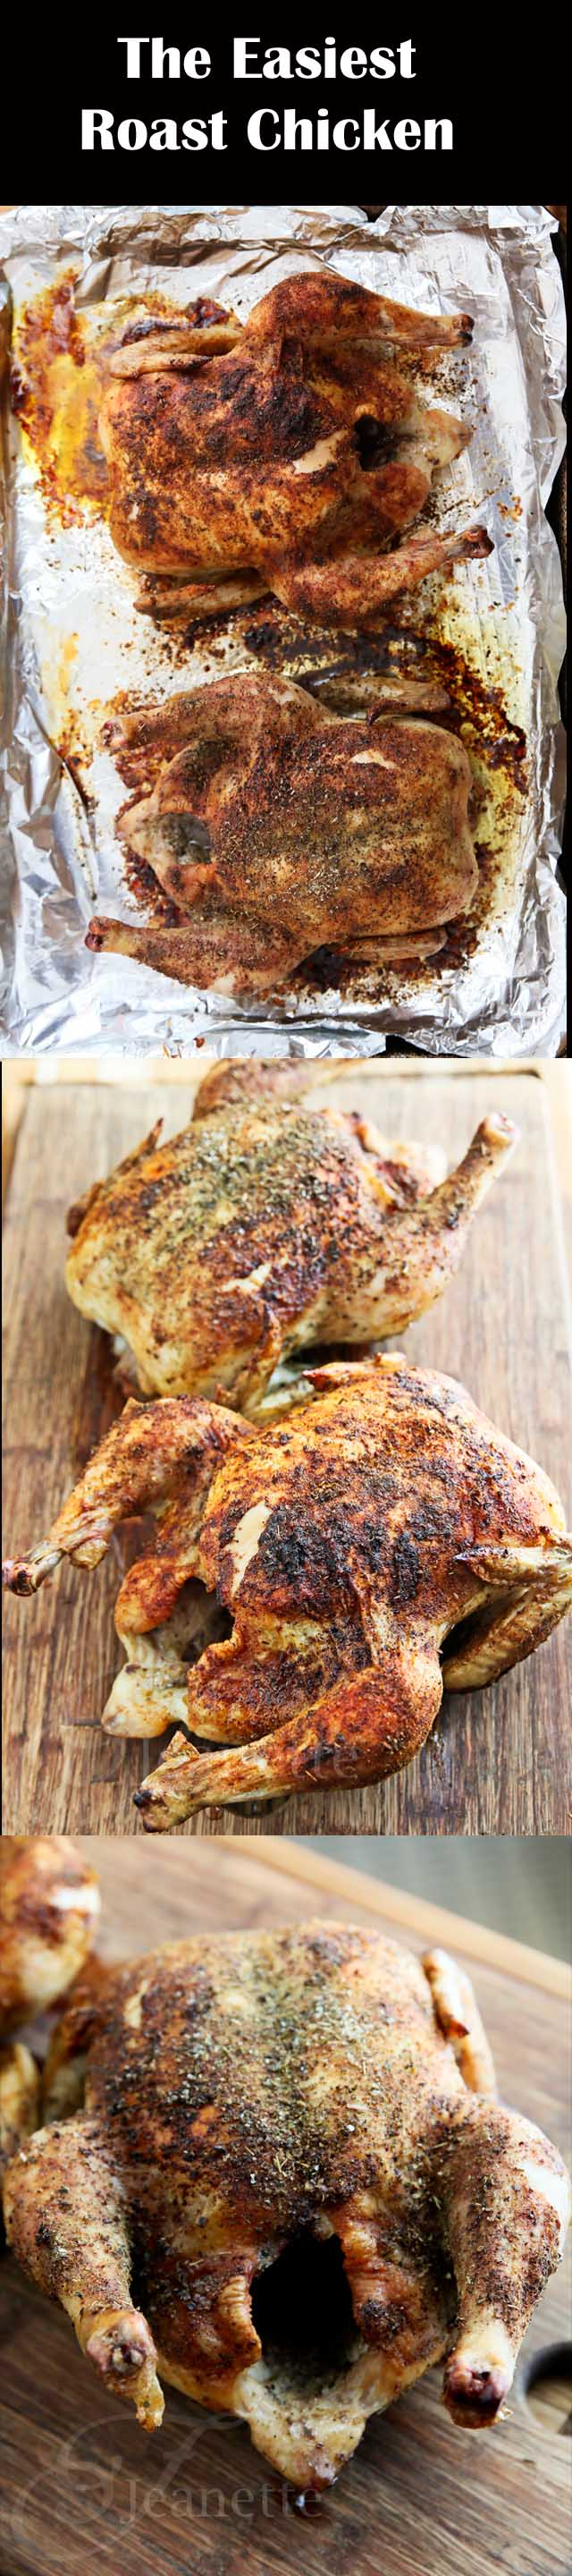 The Easiest Herb Spiced Roasted Chicken